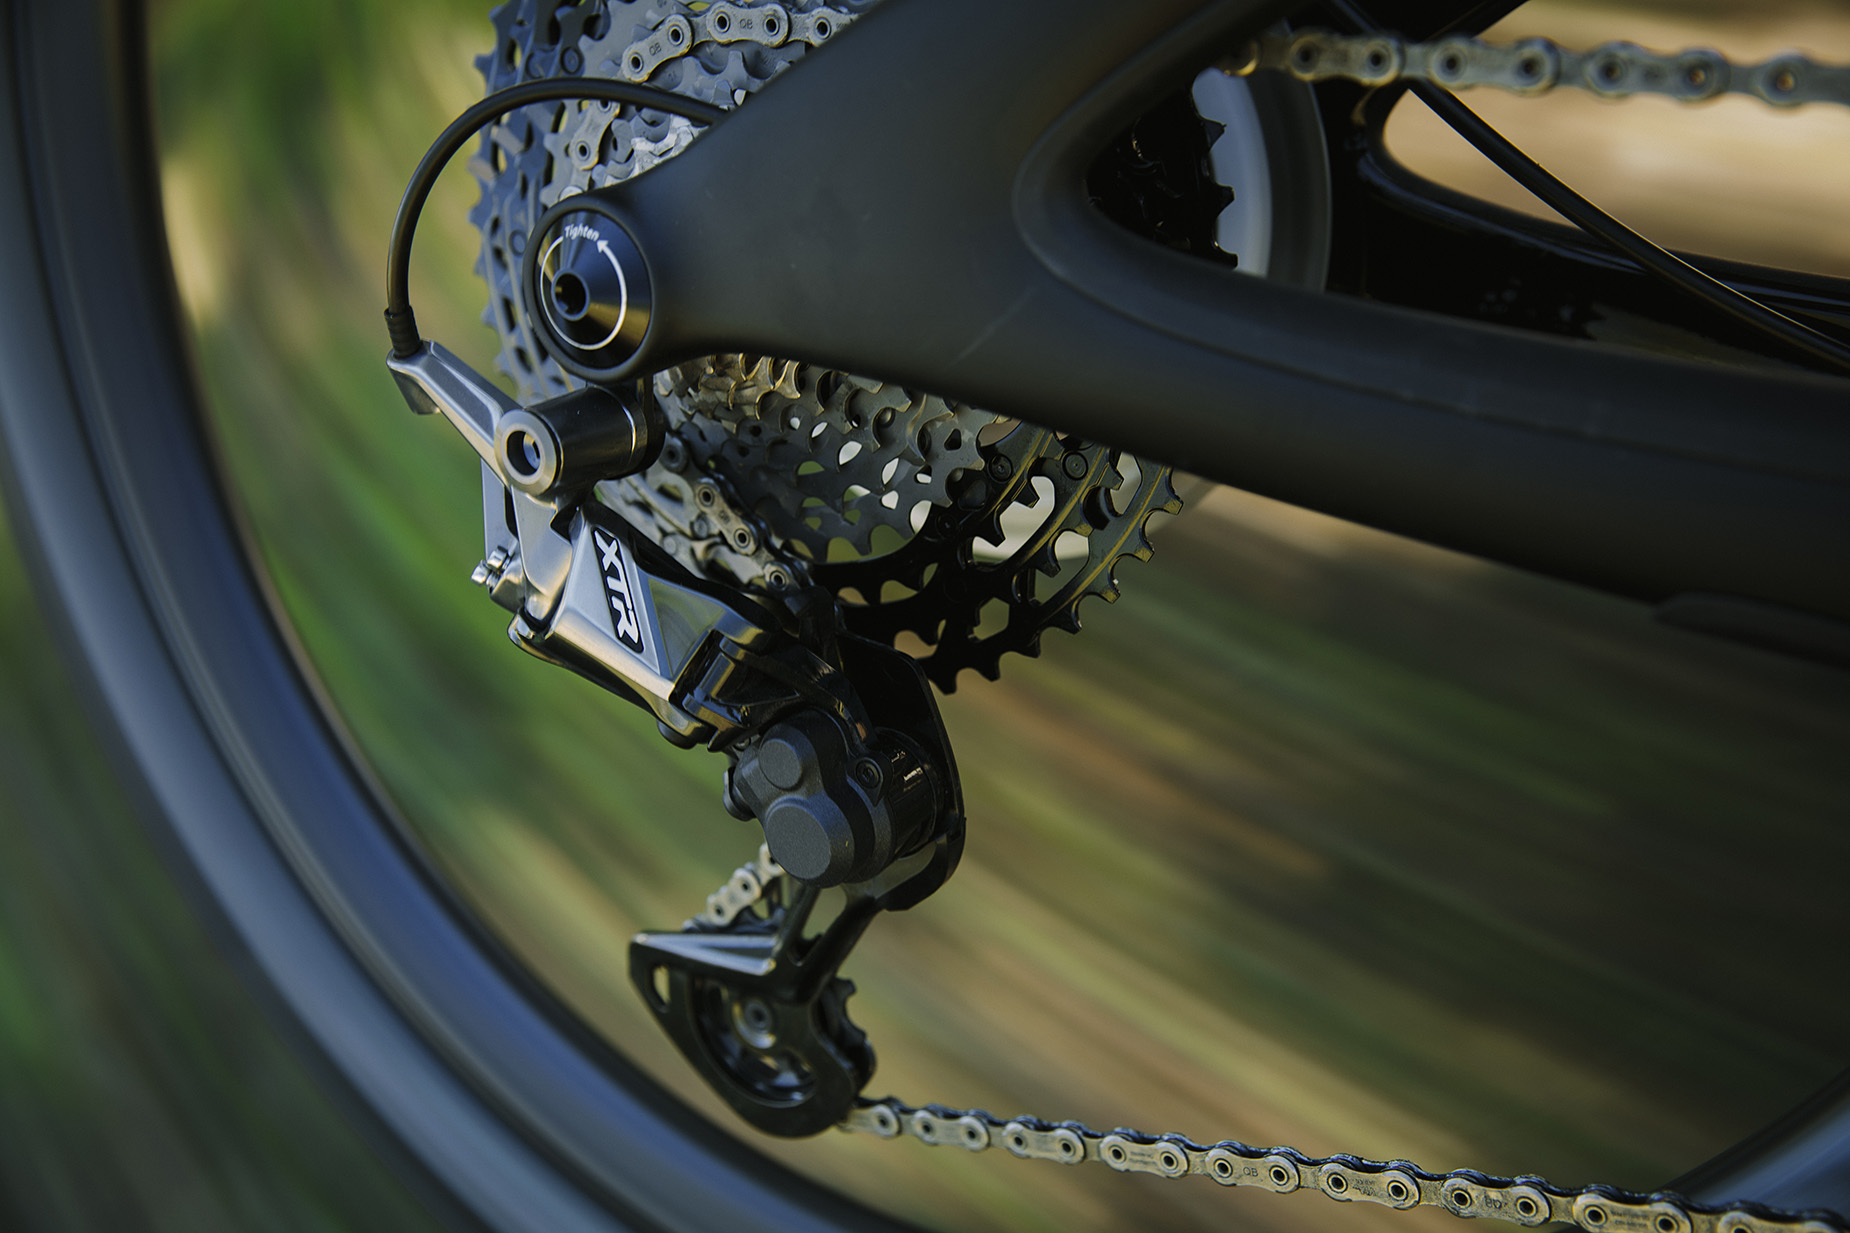 65cbc4be680 First Ride: Shimano XTR M9100 12 speed in both XC & Enduro 1x12 ...